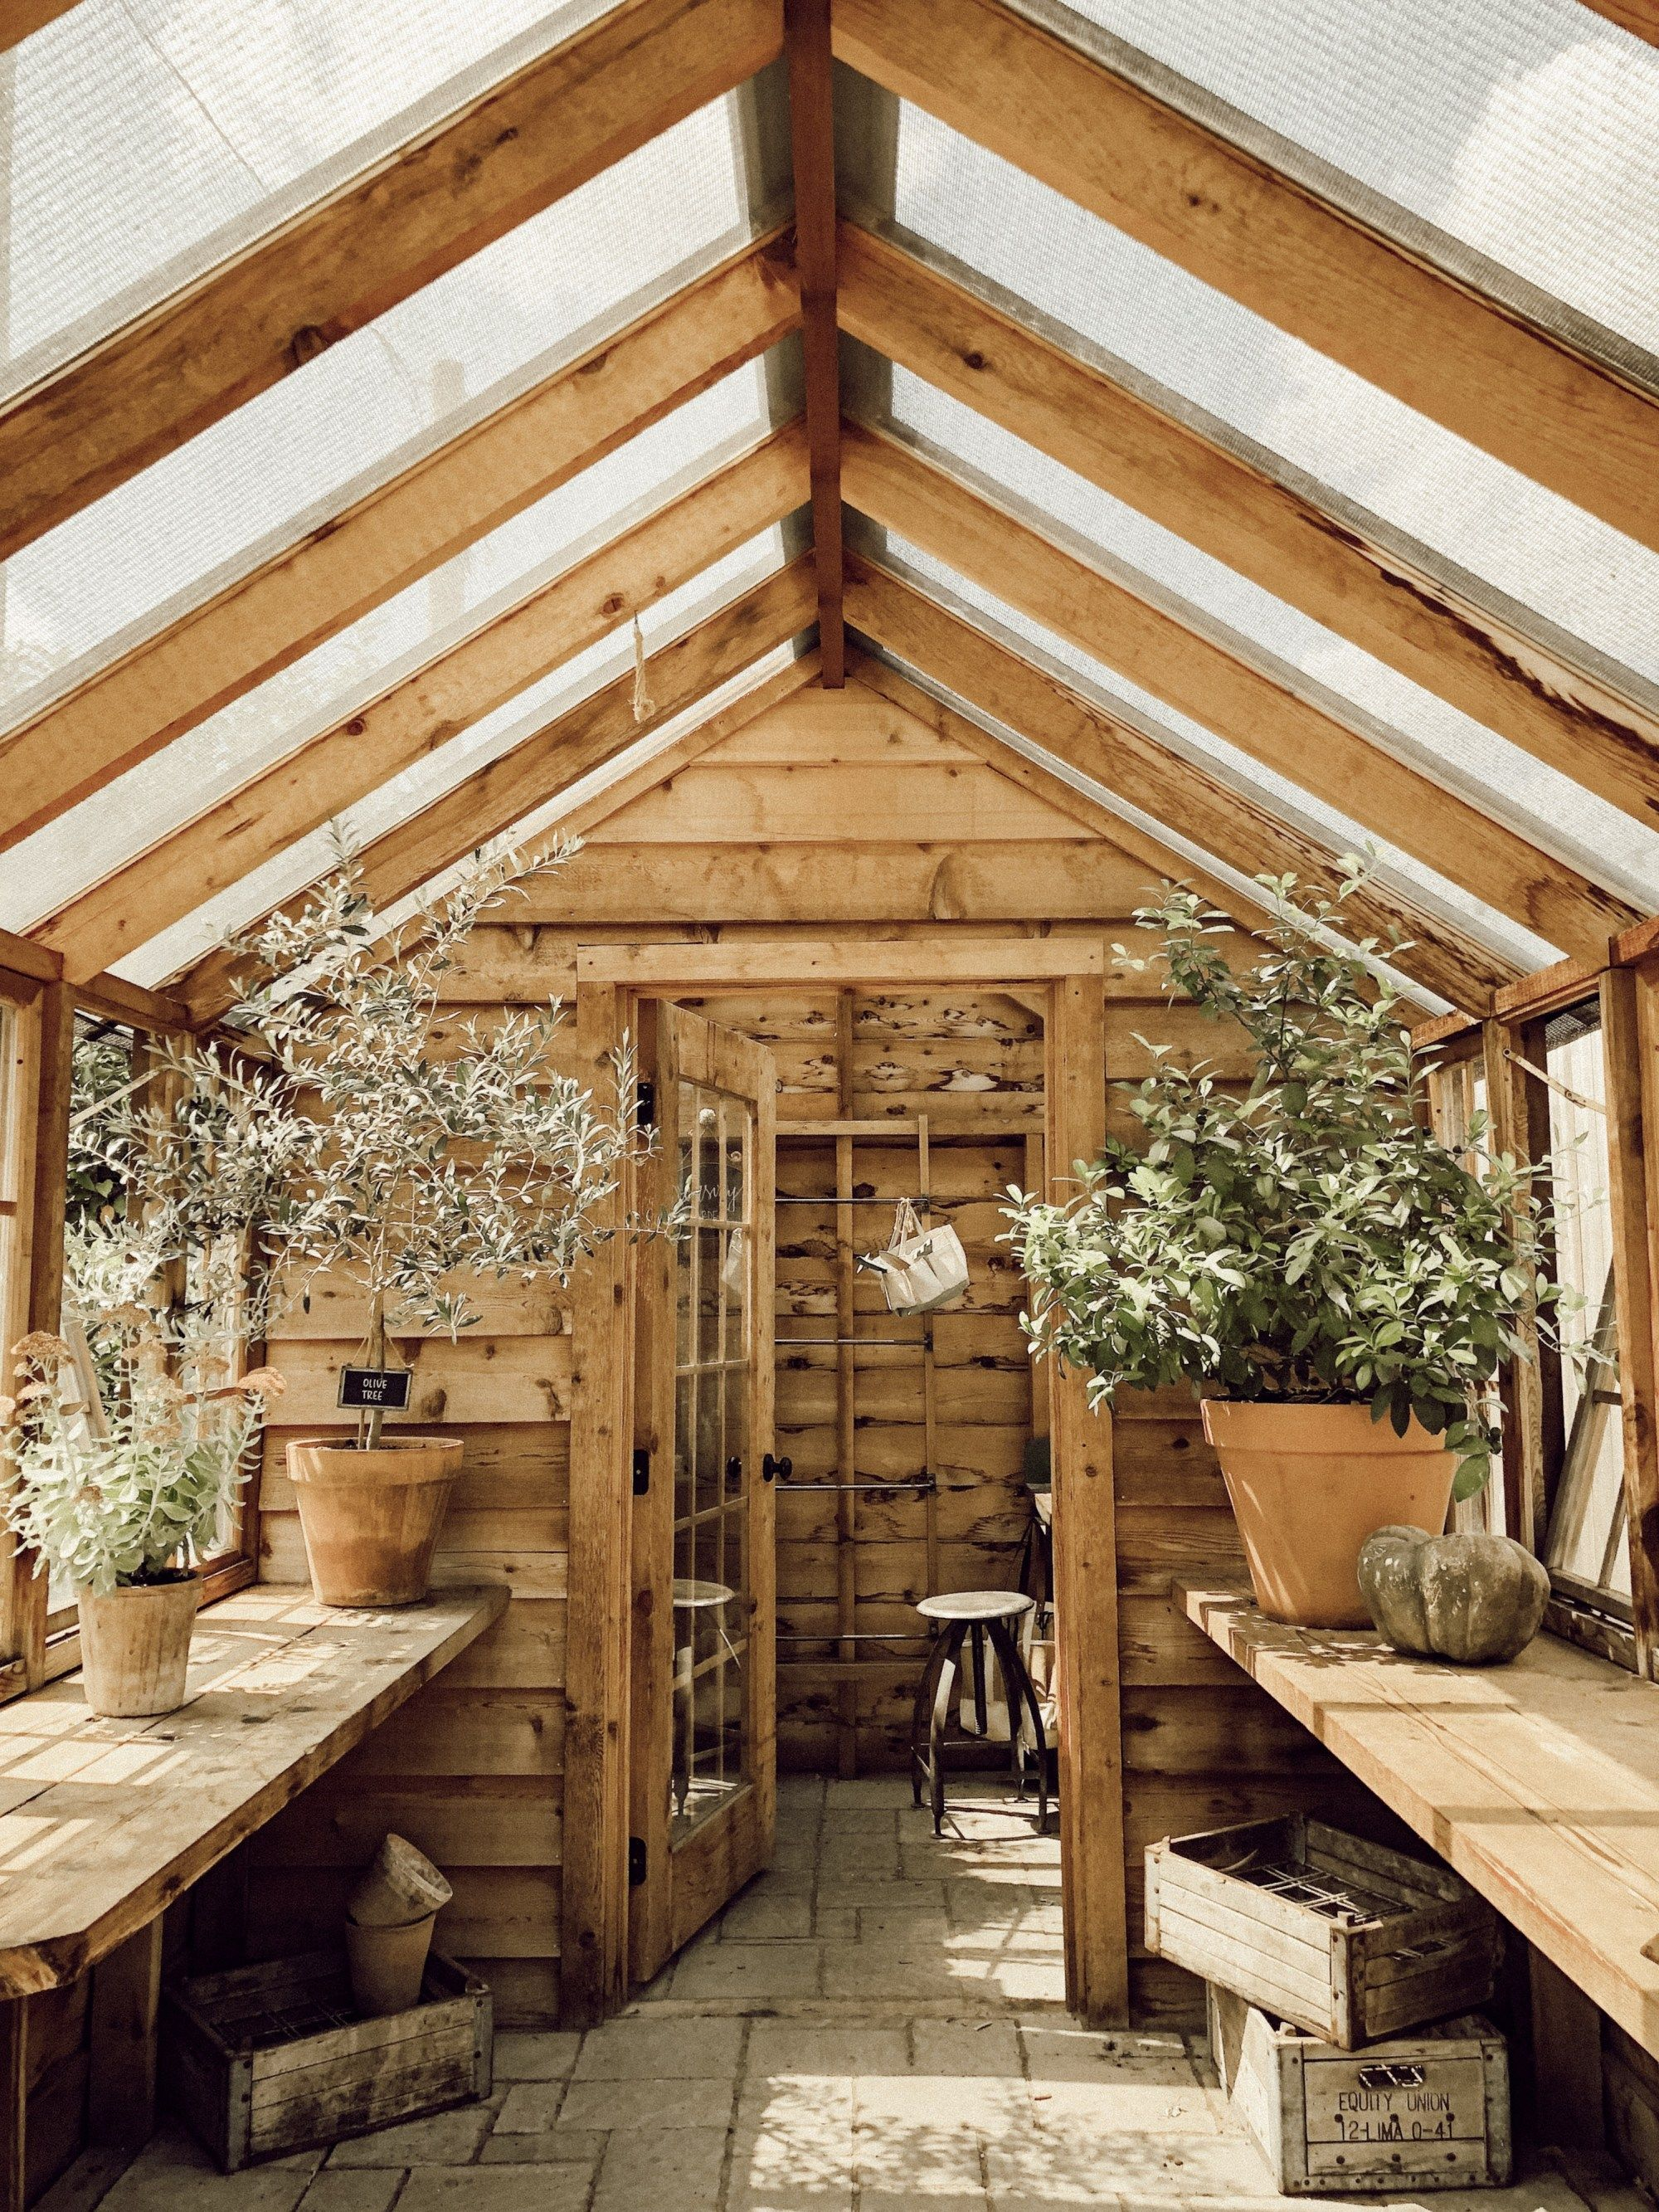 Our Trip To Magnolia Market   Homestead practical   Pinterest ...